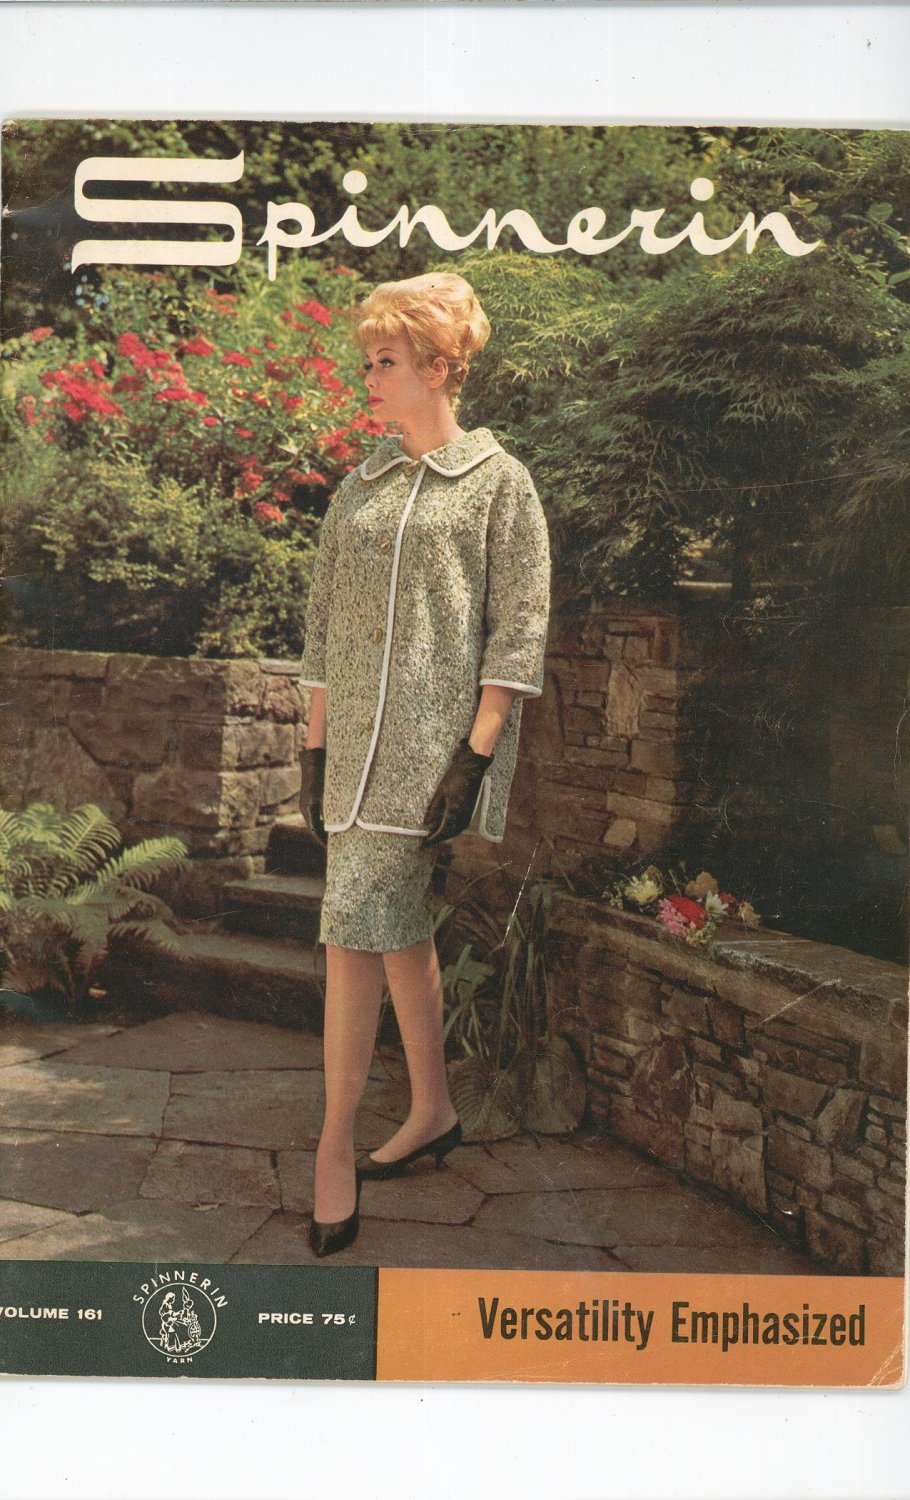 Vintage Spinnerin Versatility Emphasized Volume 161 1962 Knit Crochet